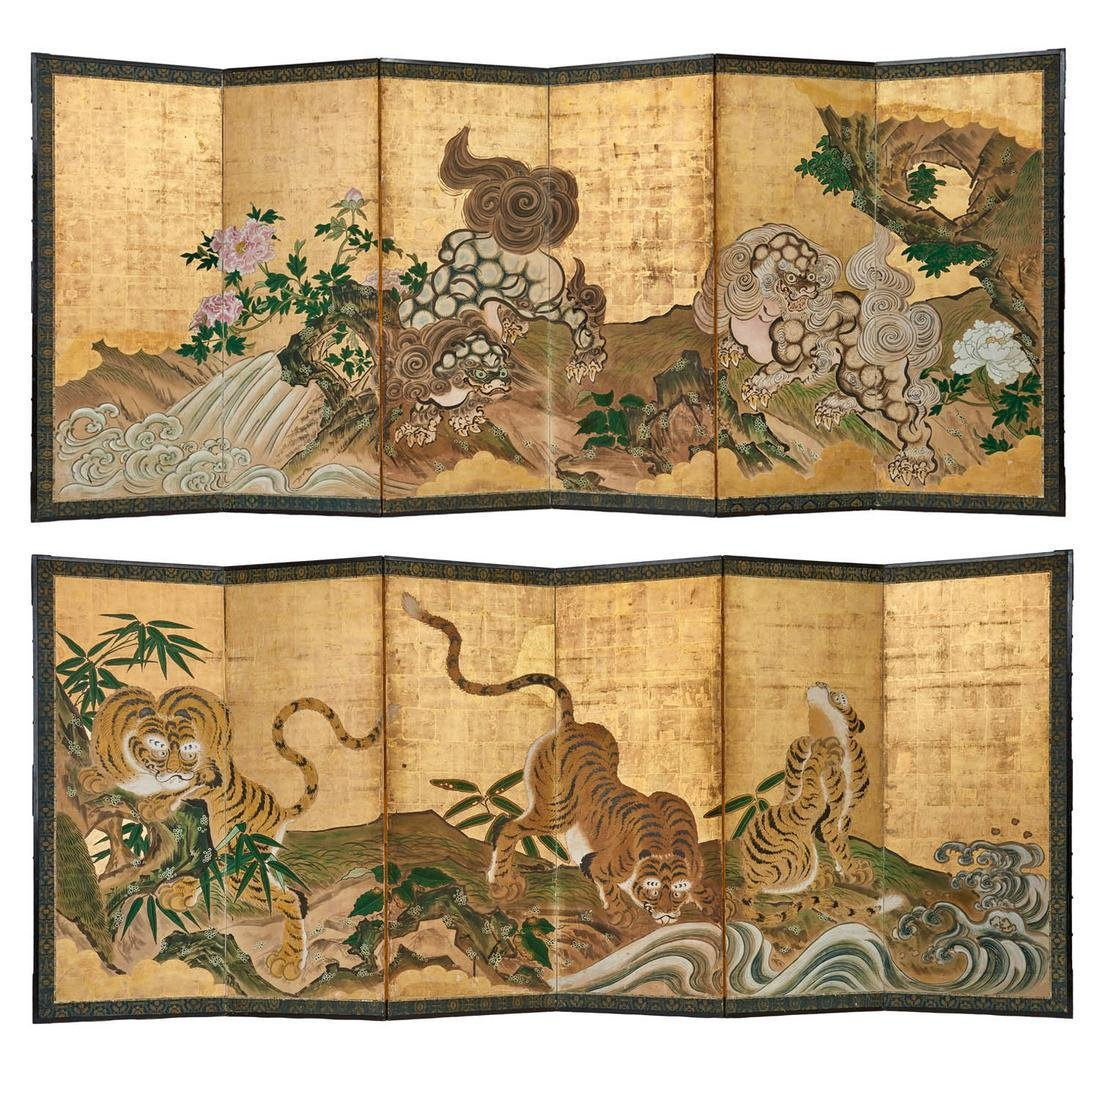 Rare set of 2 six panel byobu screens